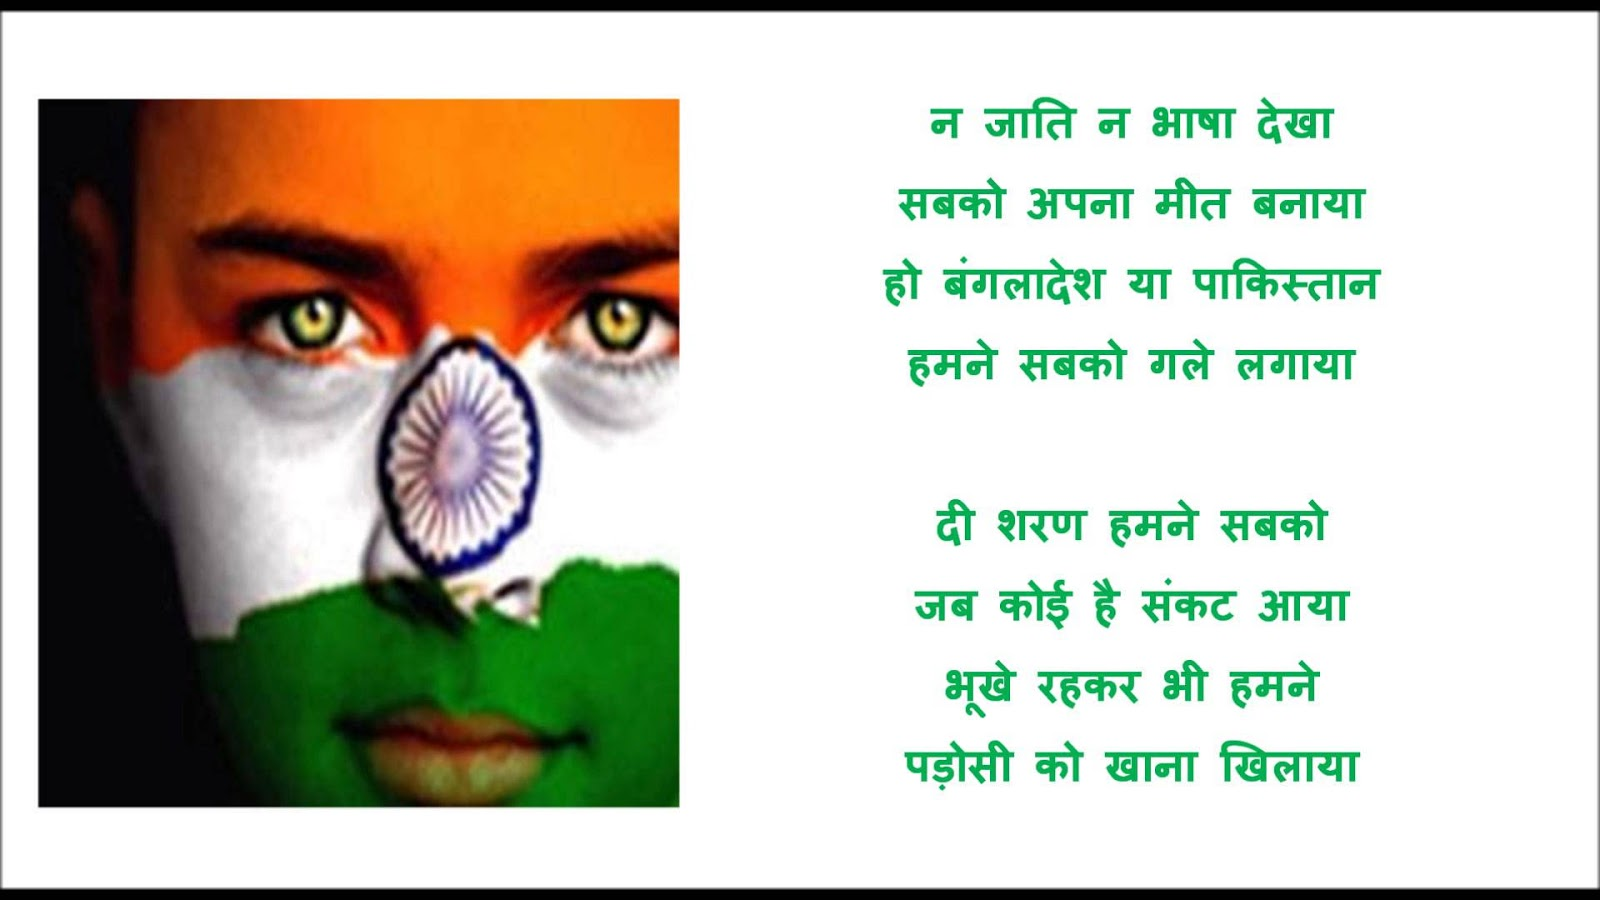 essay on republic day for class 3 Republic day commemorates the date on which the constitution of india came into force replacing the government of india act 1935 as the governing 3 comments: rajni verma, april 15, 2013 at 10:54 pm nice blog with informative and useful post anonymous, january 24, 2014 at 9:00 pm.